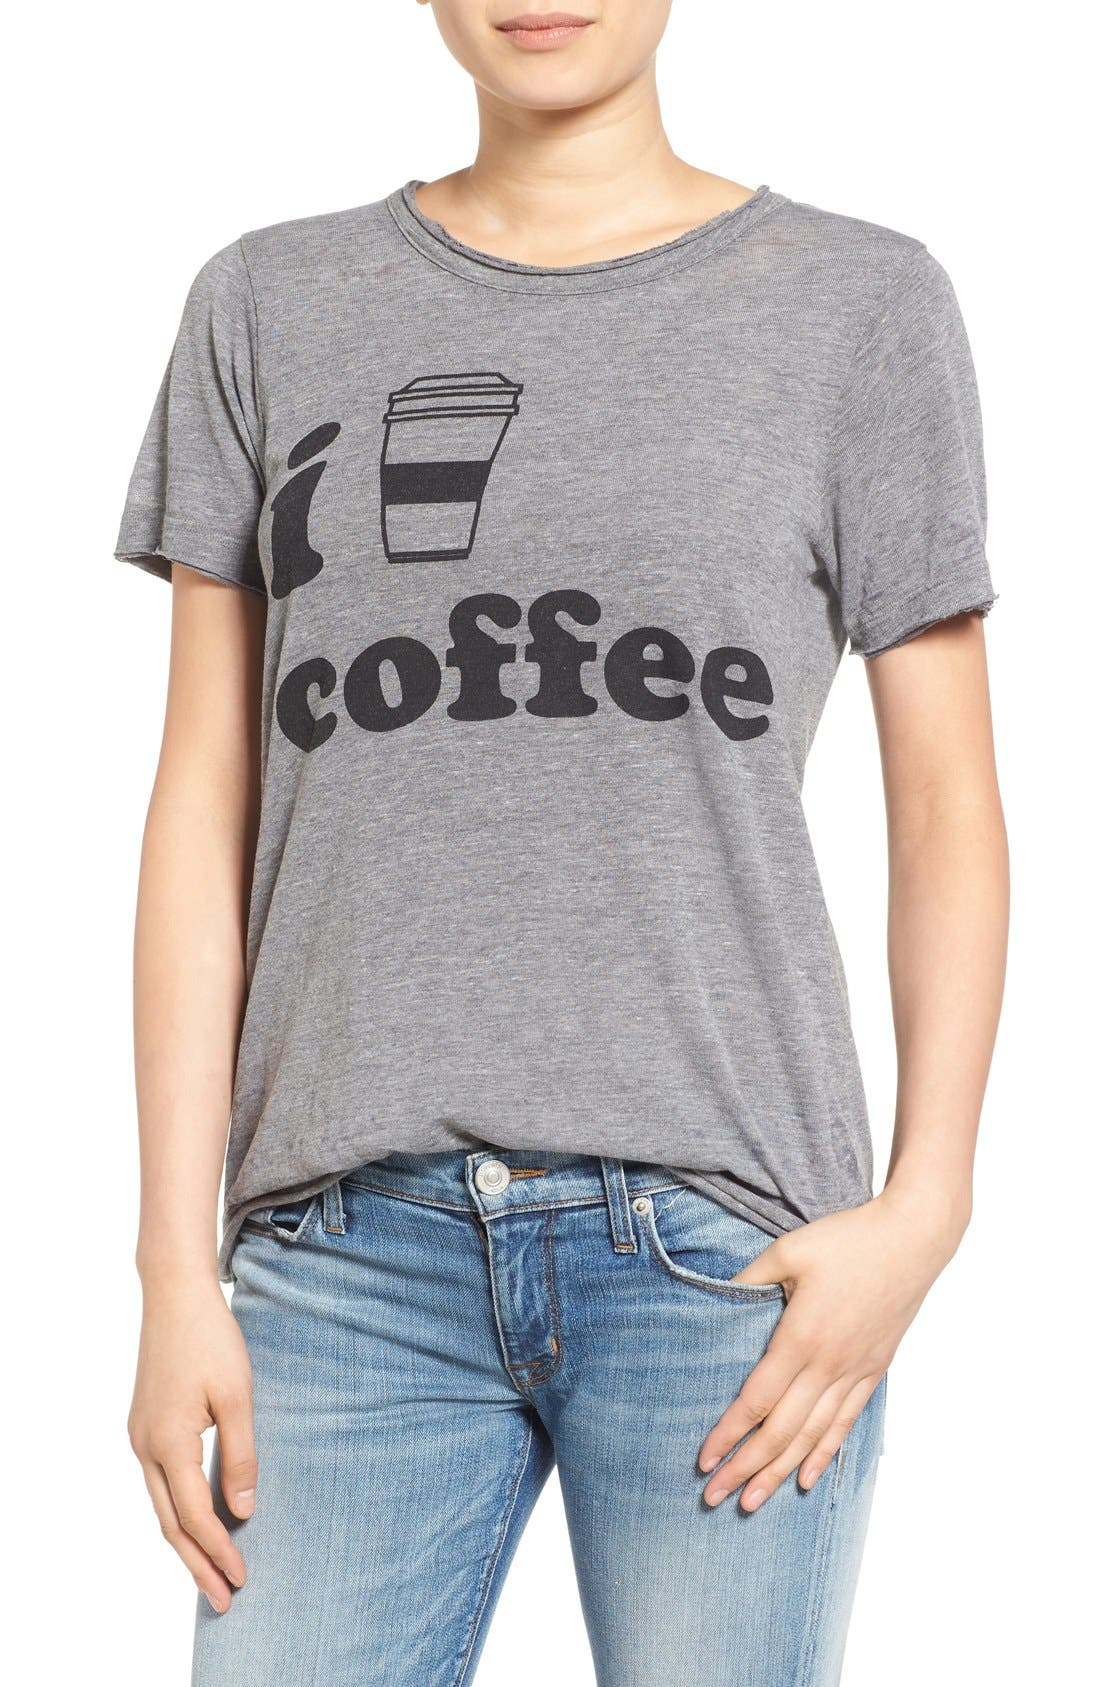 Main Image - Chaser Coffee Graphic Tee